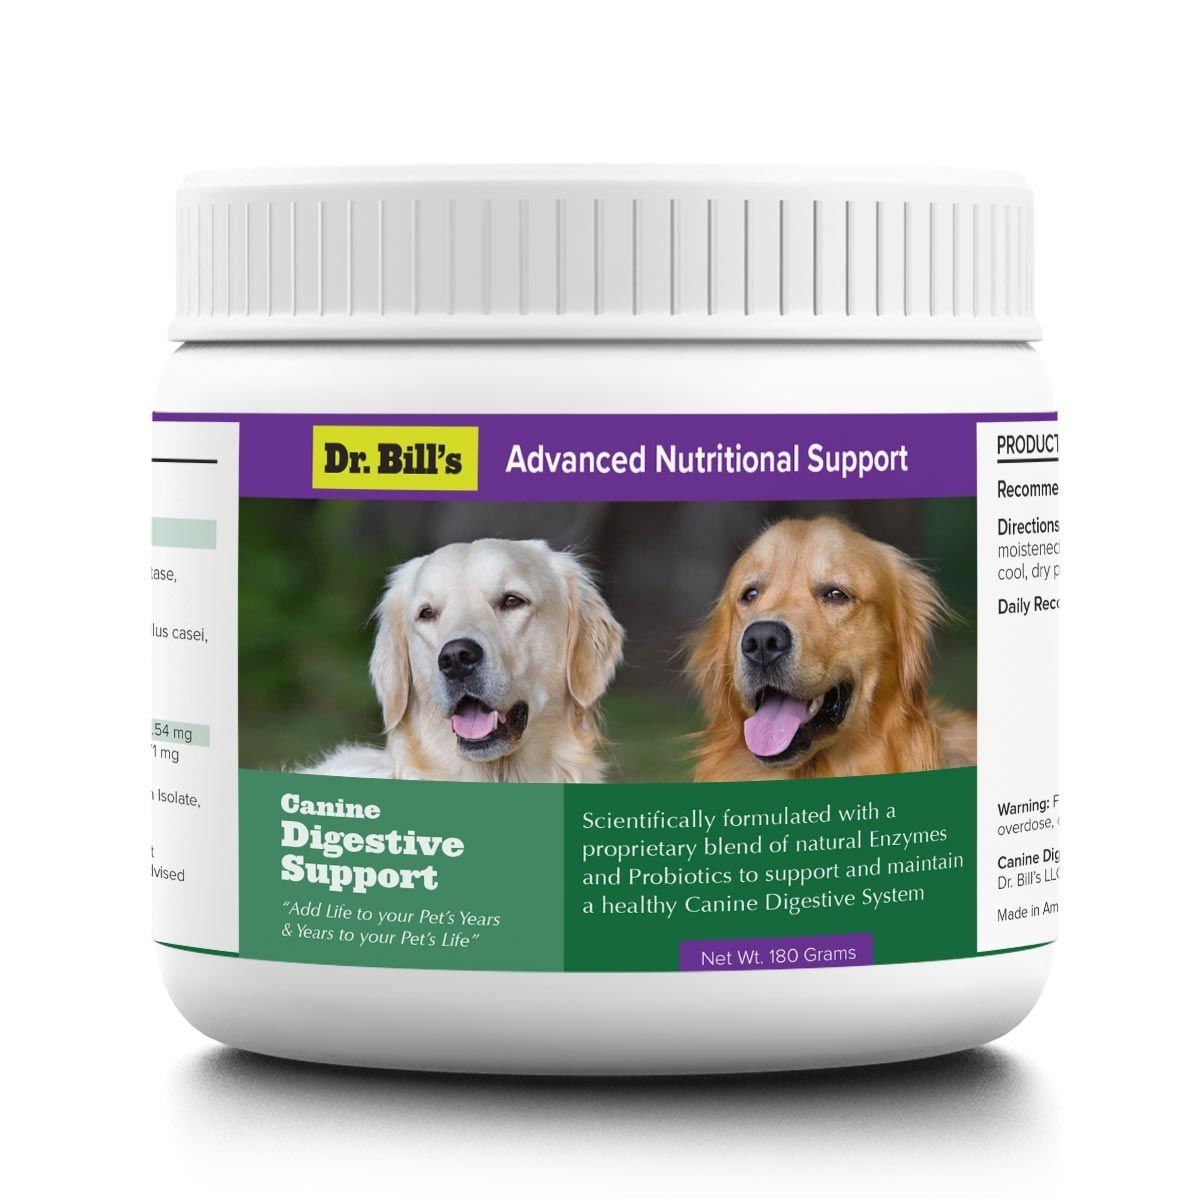 Dr. Bill's Canine Digestive Support | Probiotics for Dogs, with Natural Digestive Enzymes and Prebiotics | Includes Ginger Root, Lemon Balm, Psyllium Seed, Lactobacillus, Bifidobacterium | 180 Grams by Dr. Bill's